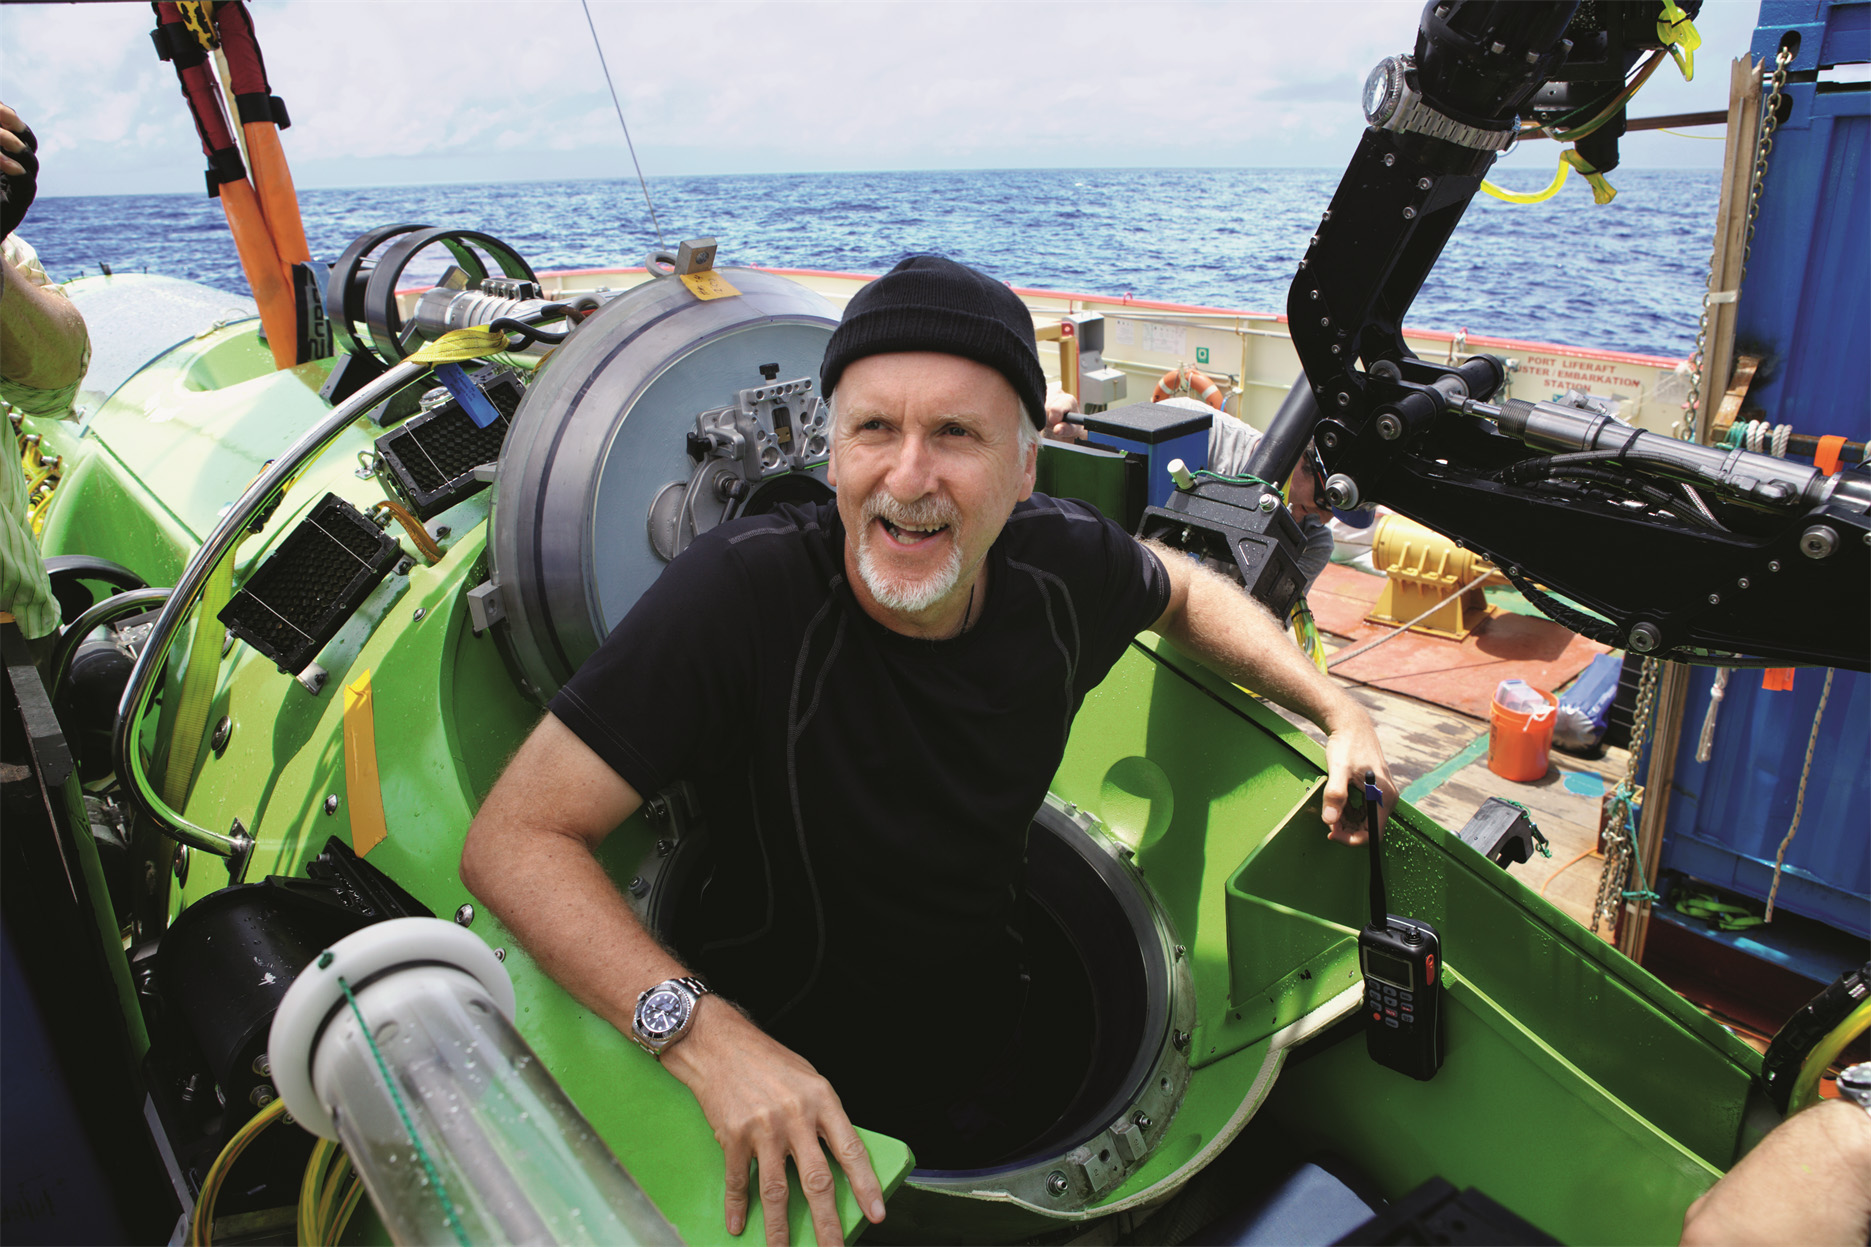 James Cameron and the Deepsea Challenger